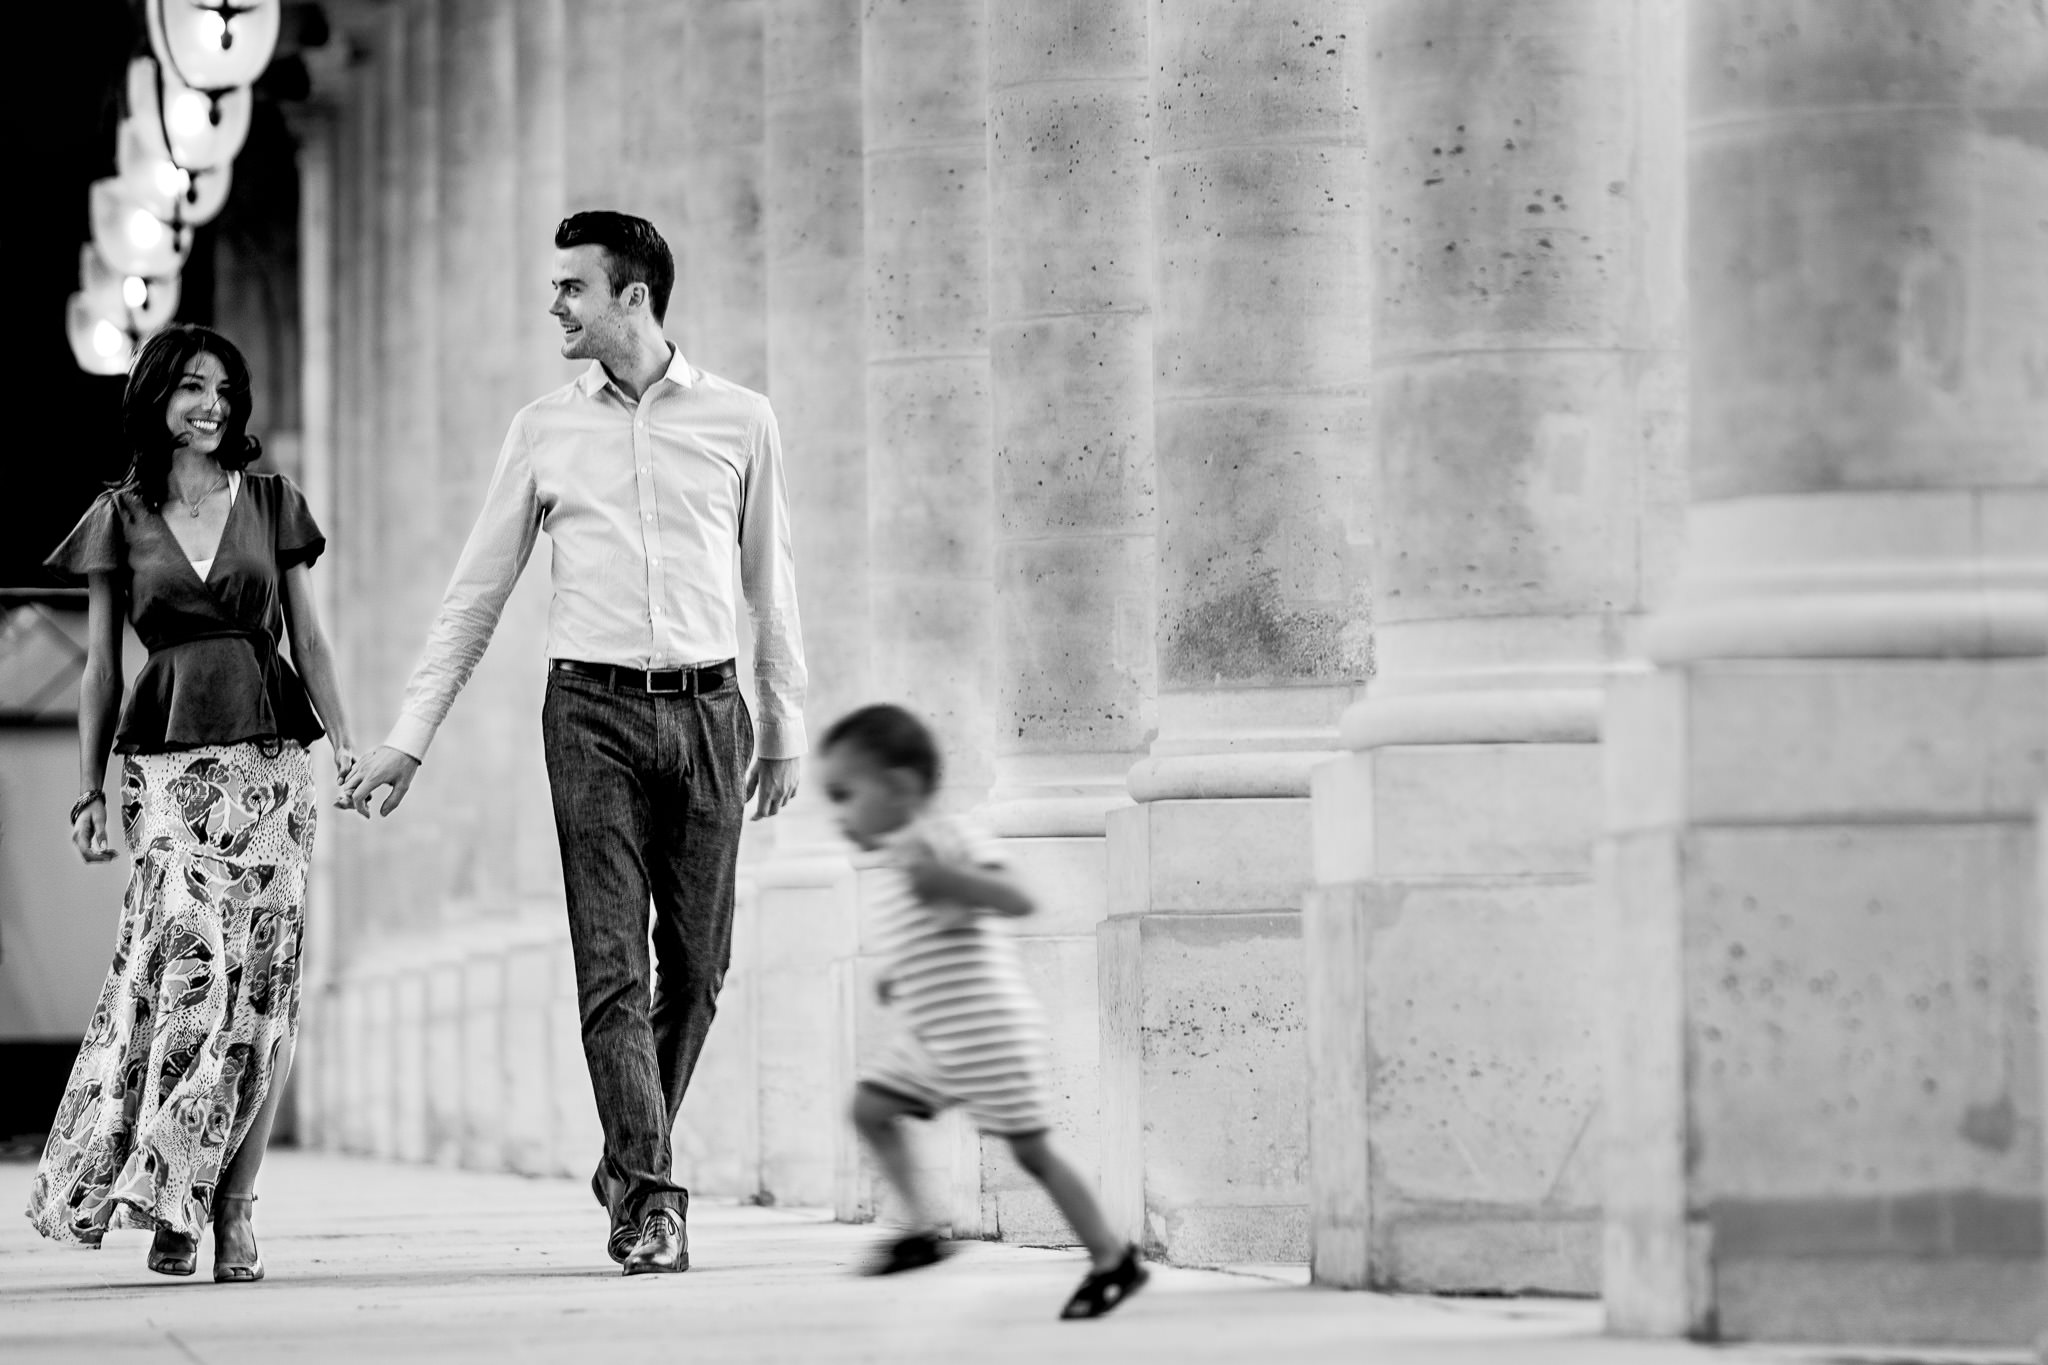 Engagement photo in Paris with child running in foreground